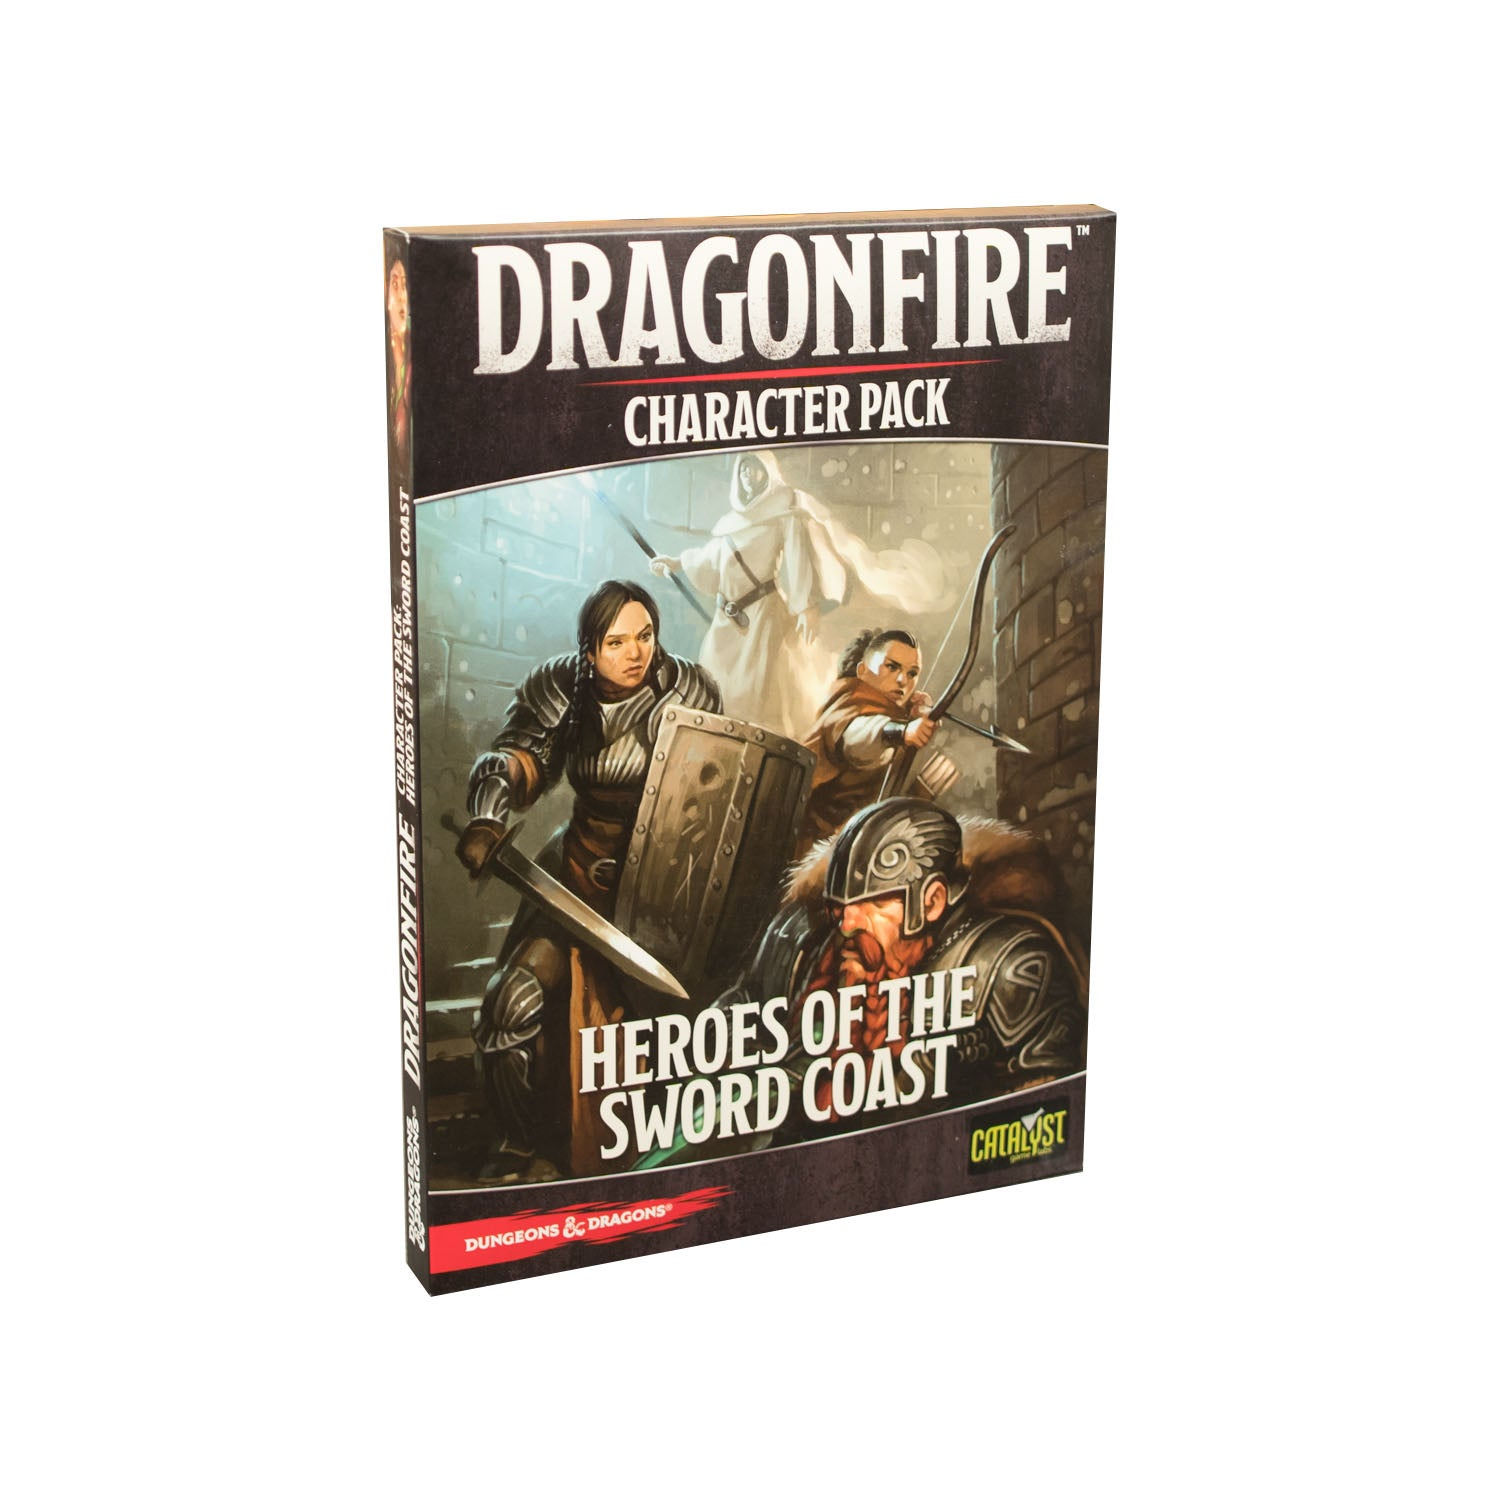 Dragonfire: Character Pack - Heroes of the Sword Coast